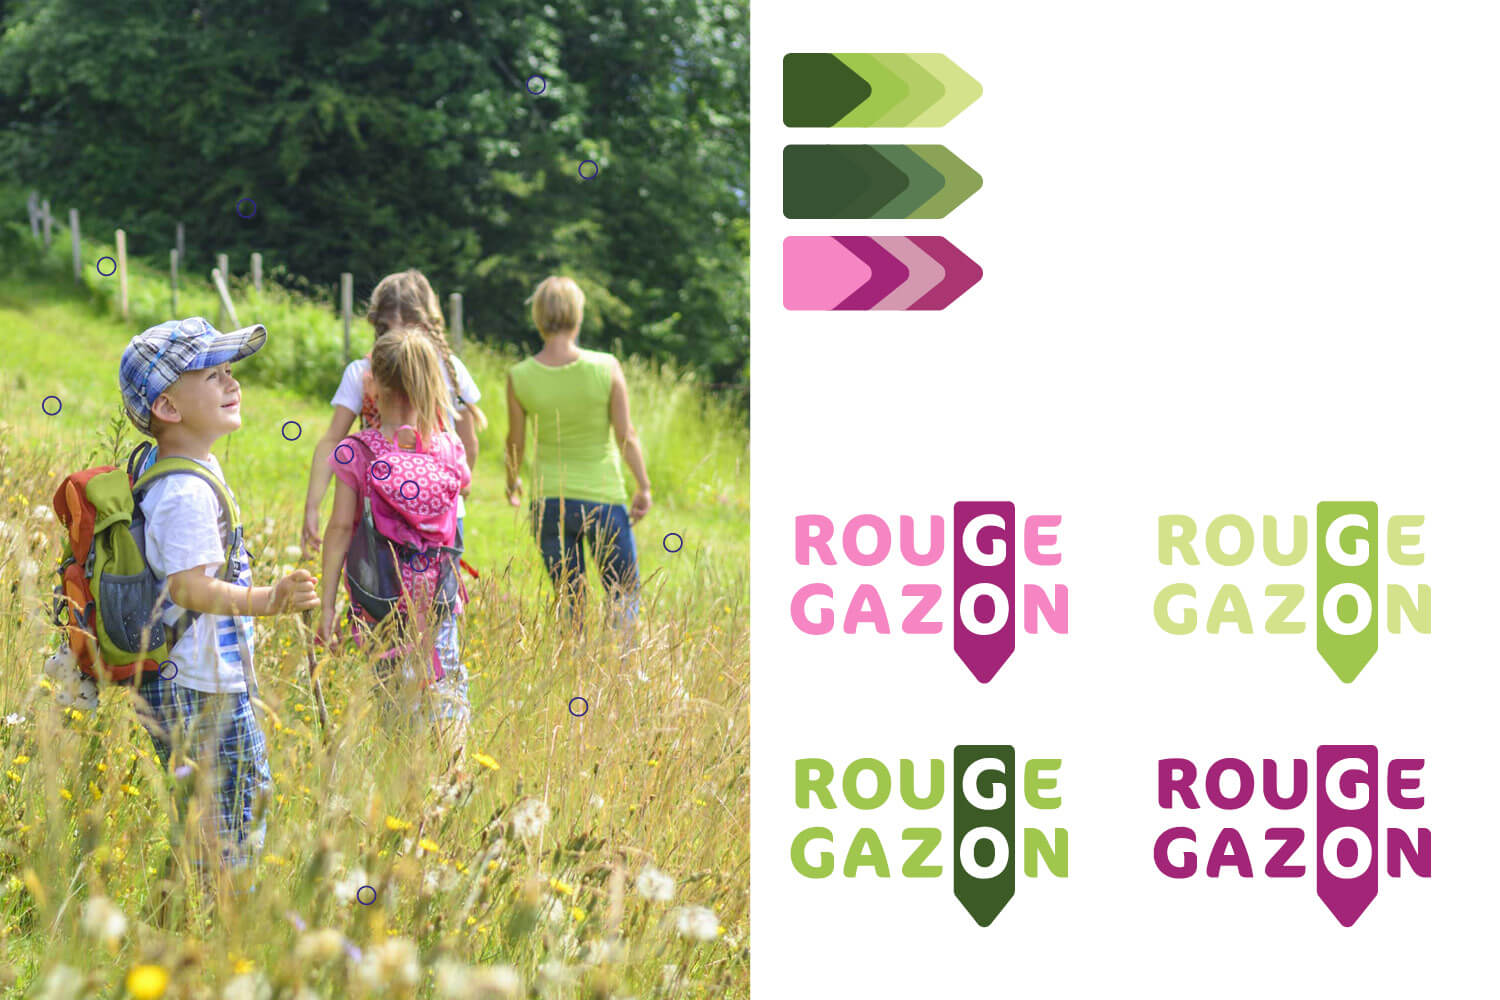 rougegazon lezardscreation identite couleurs